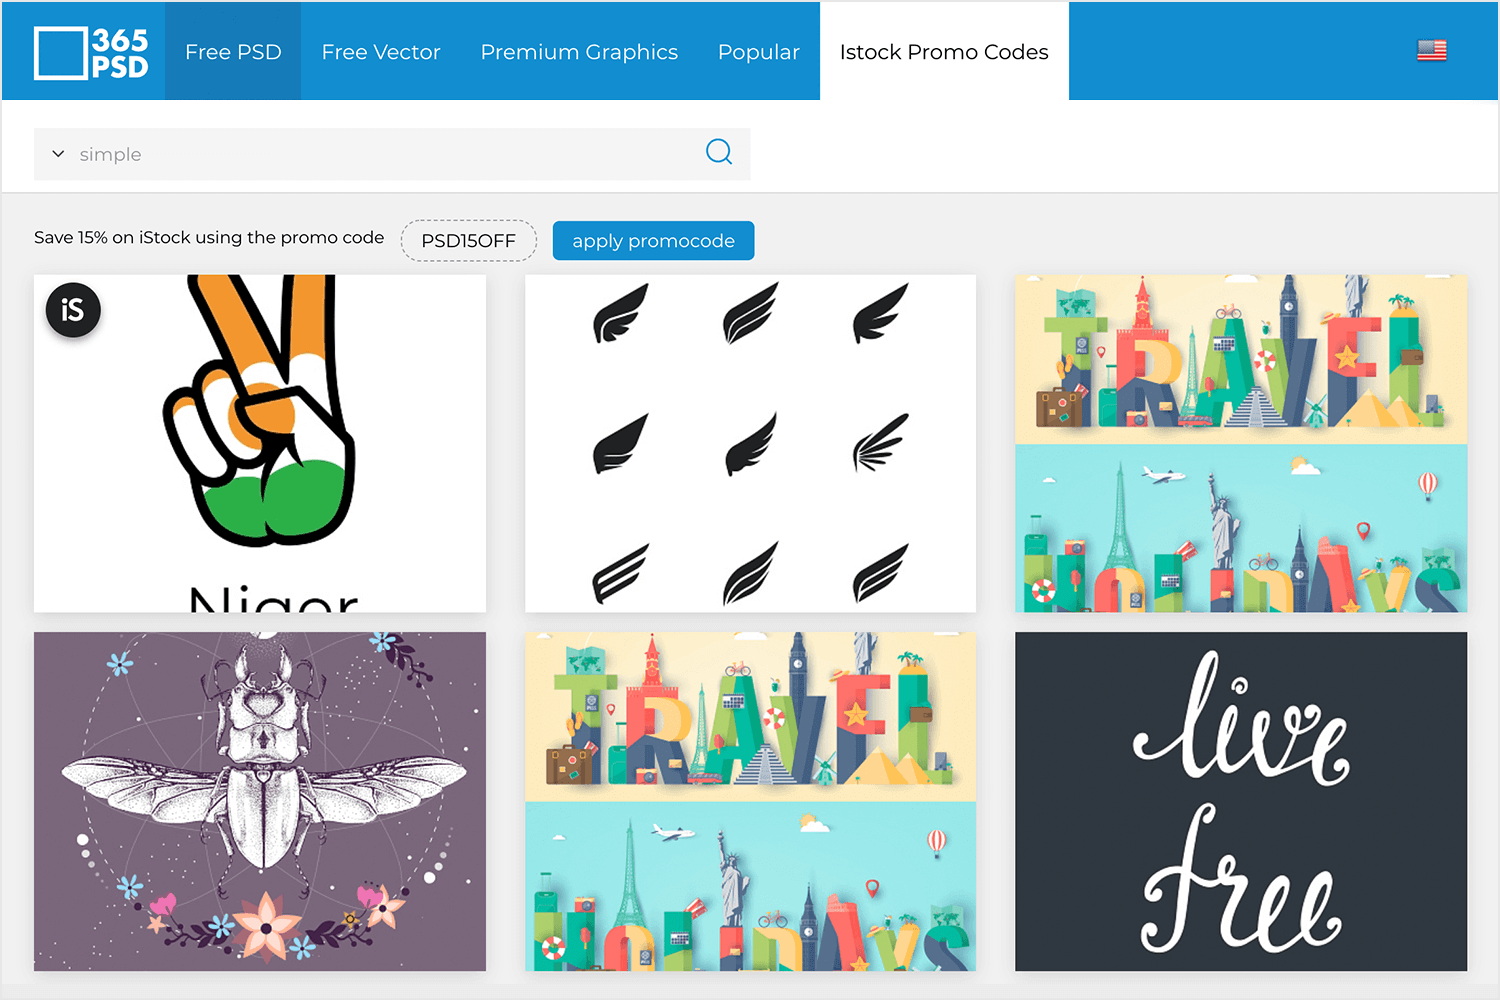 Free website icons to download - 365psd